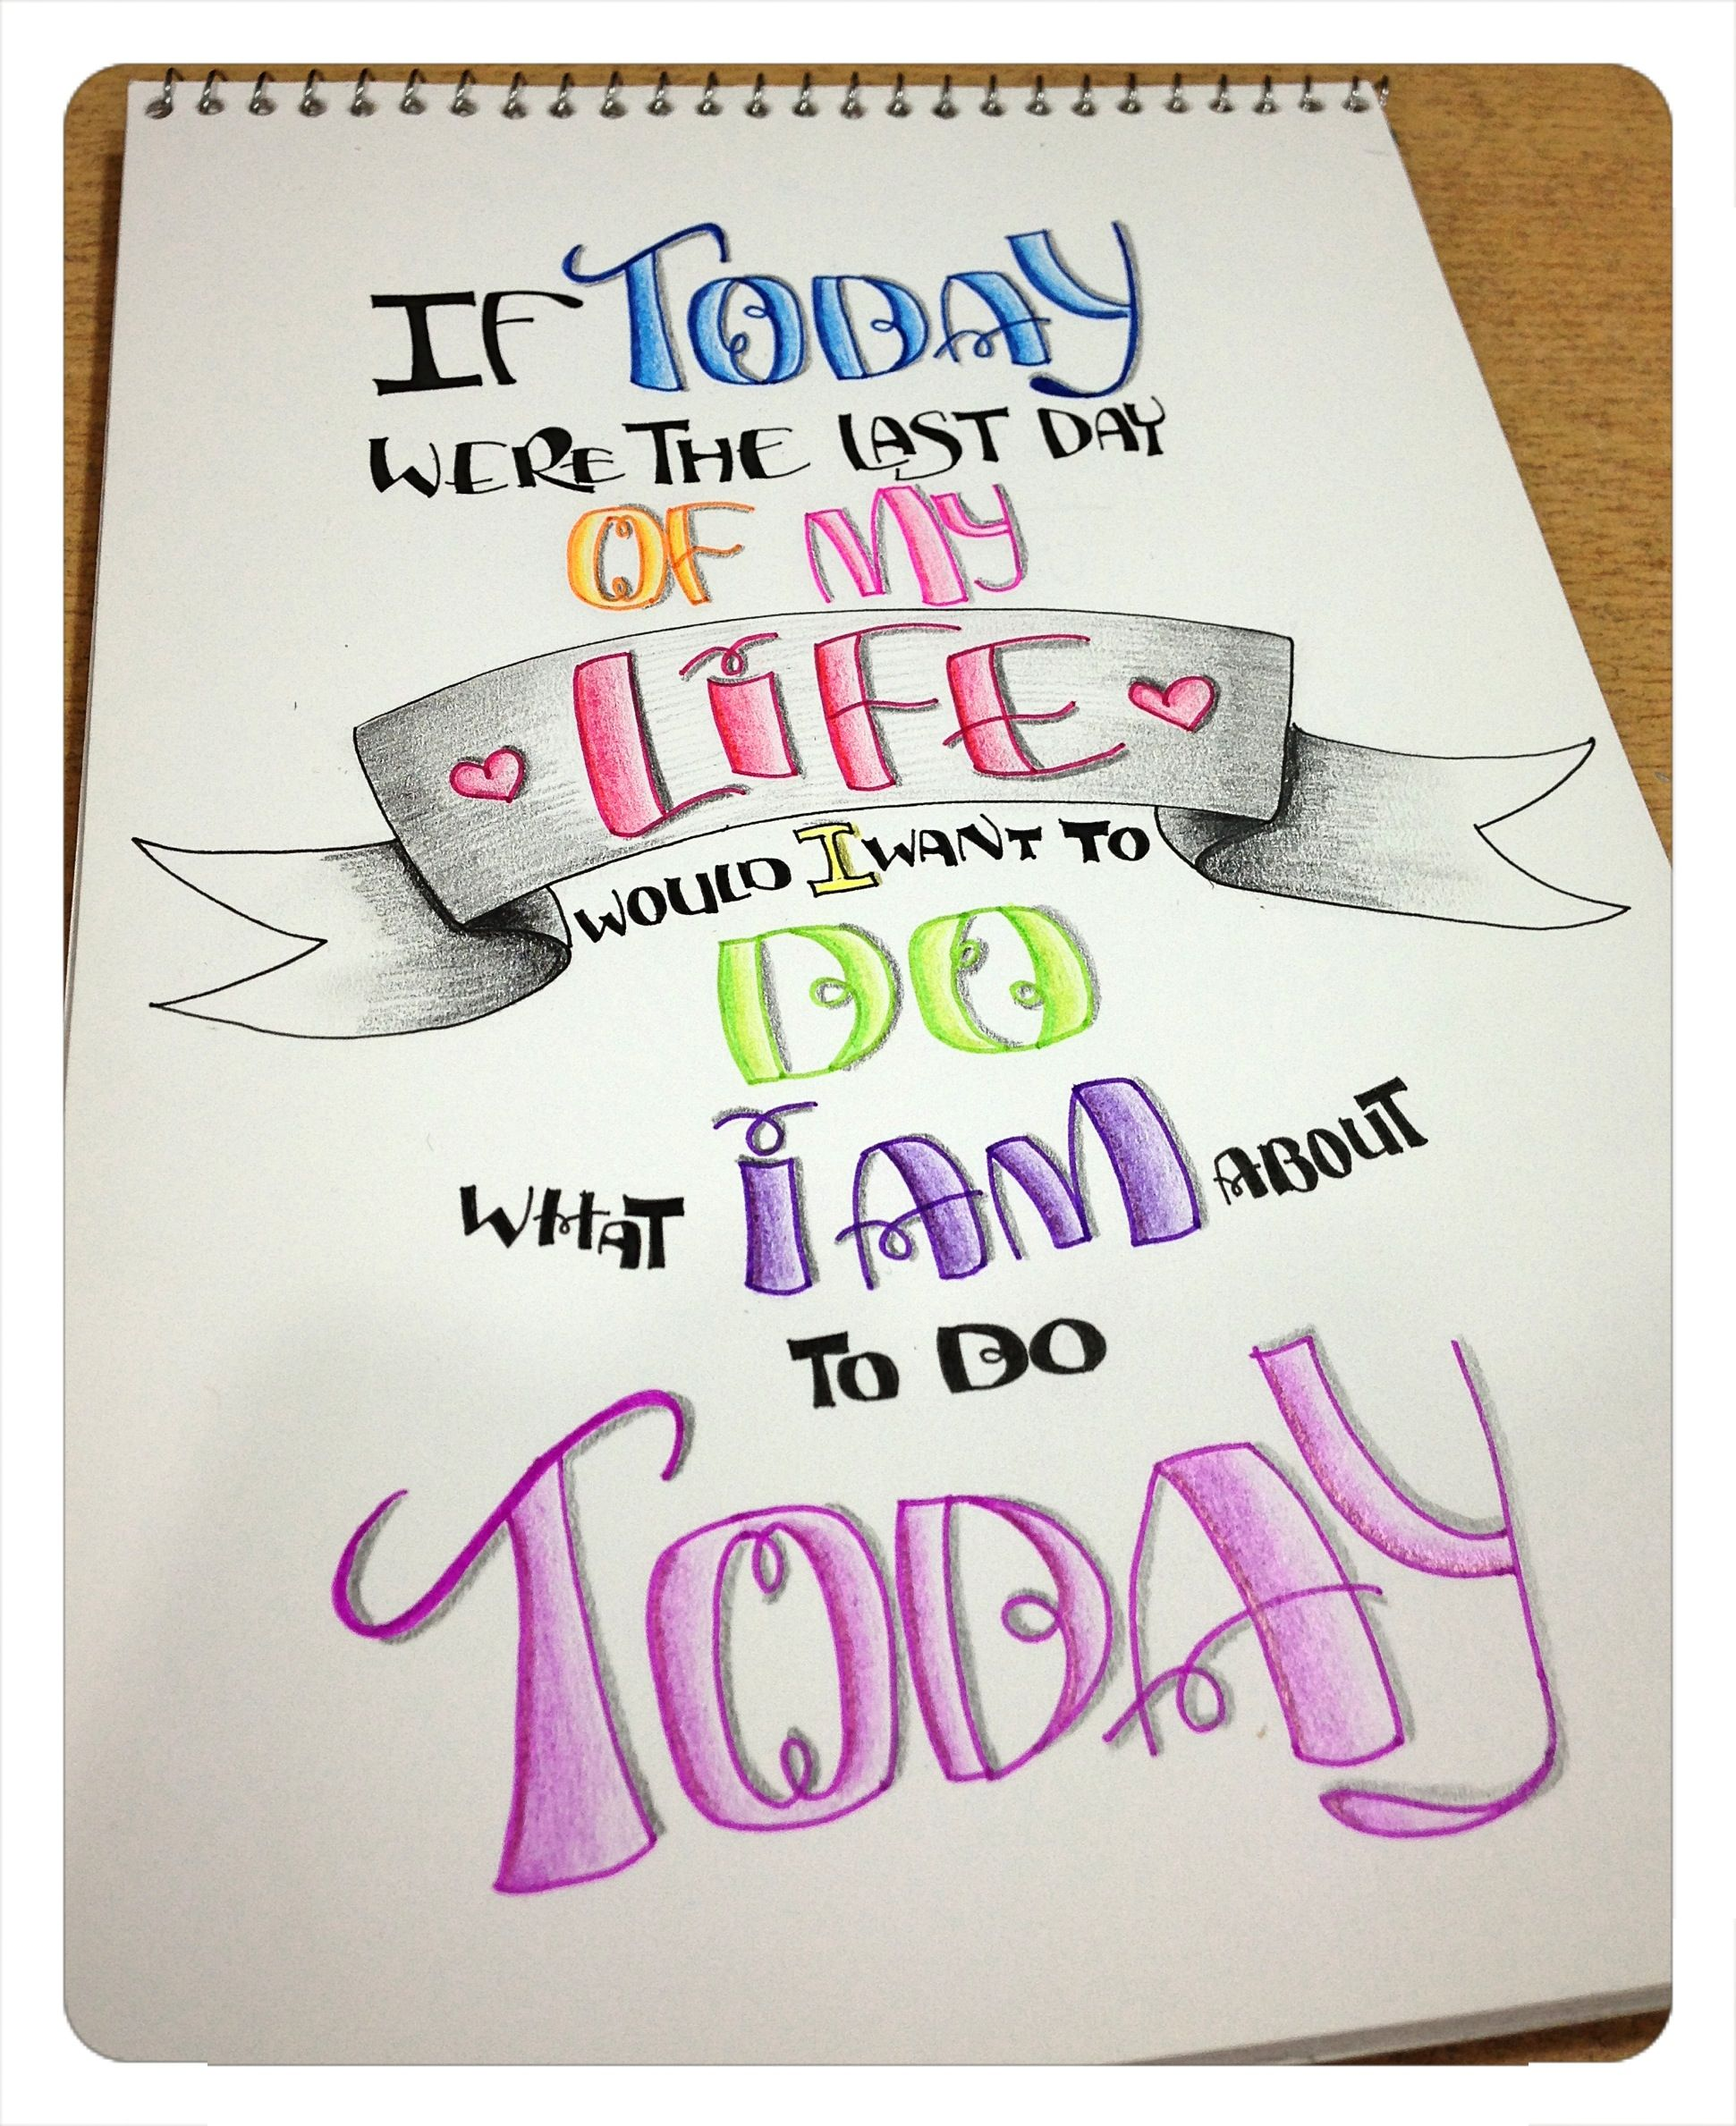 Beautiful lettering & thought If today were the last day